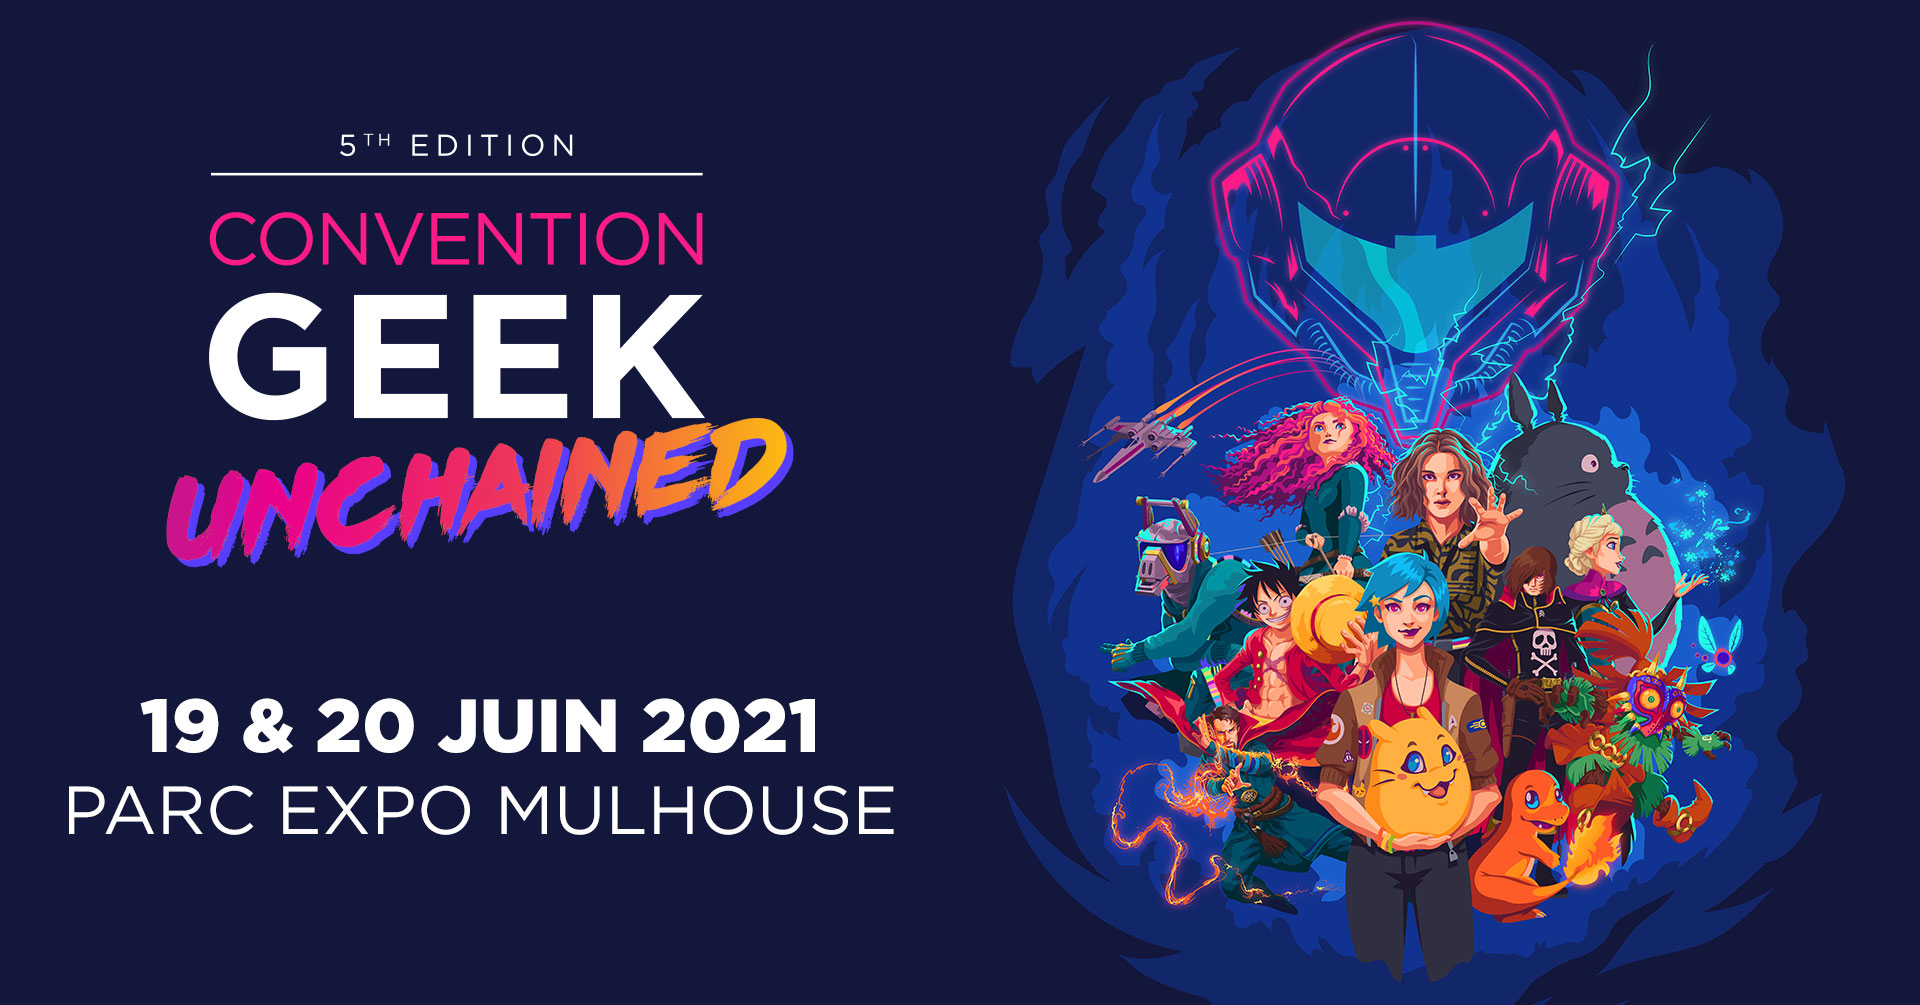 Geek Unchained Convention